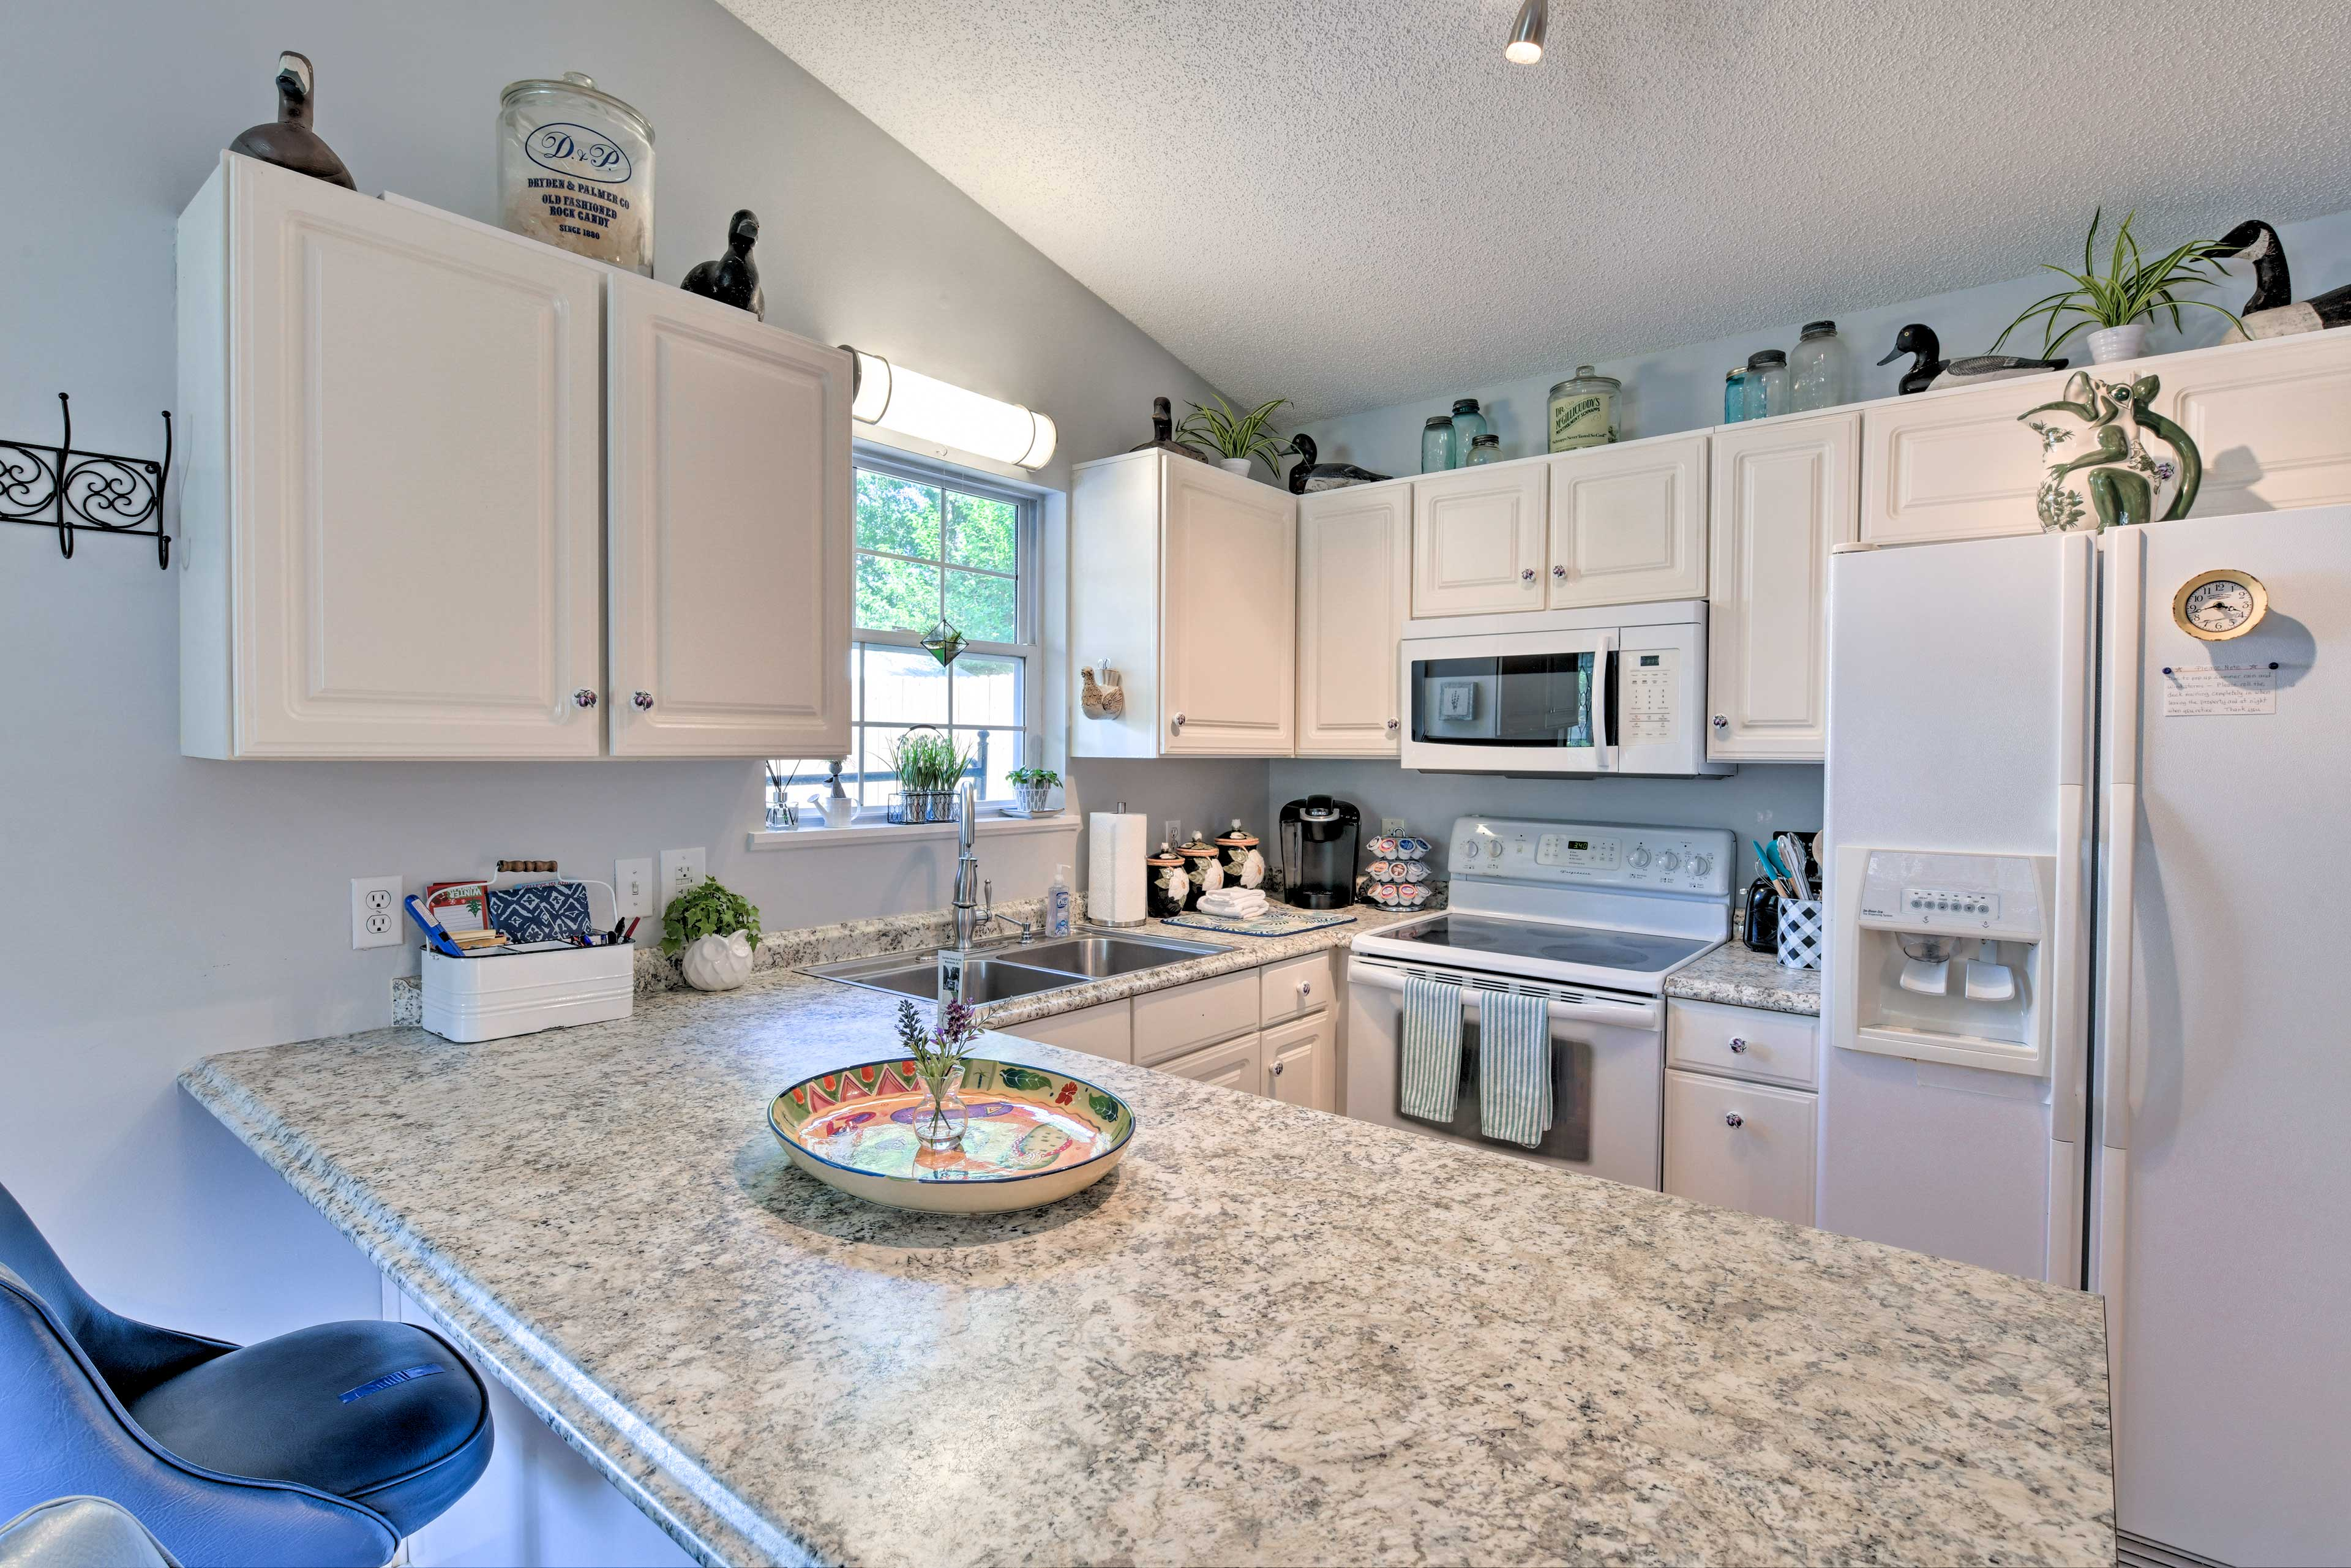 The kitchen is fully equipped with all your cooking needs.